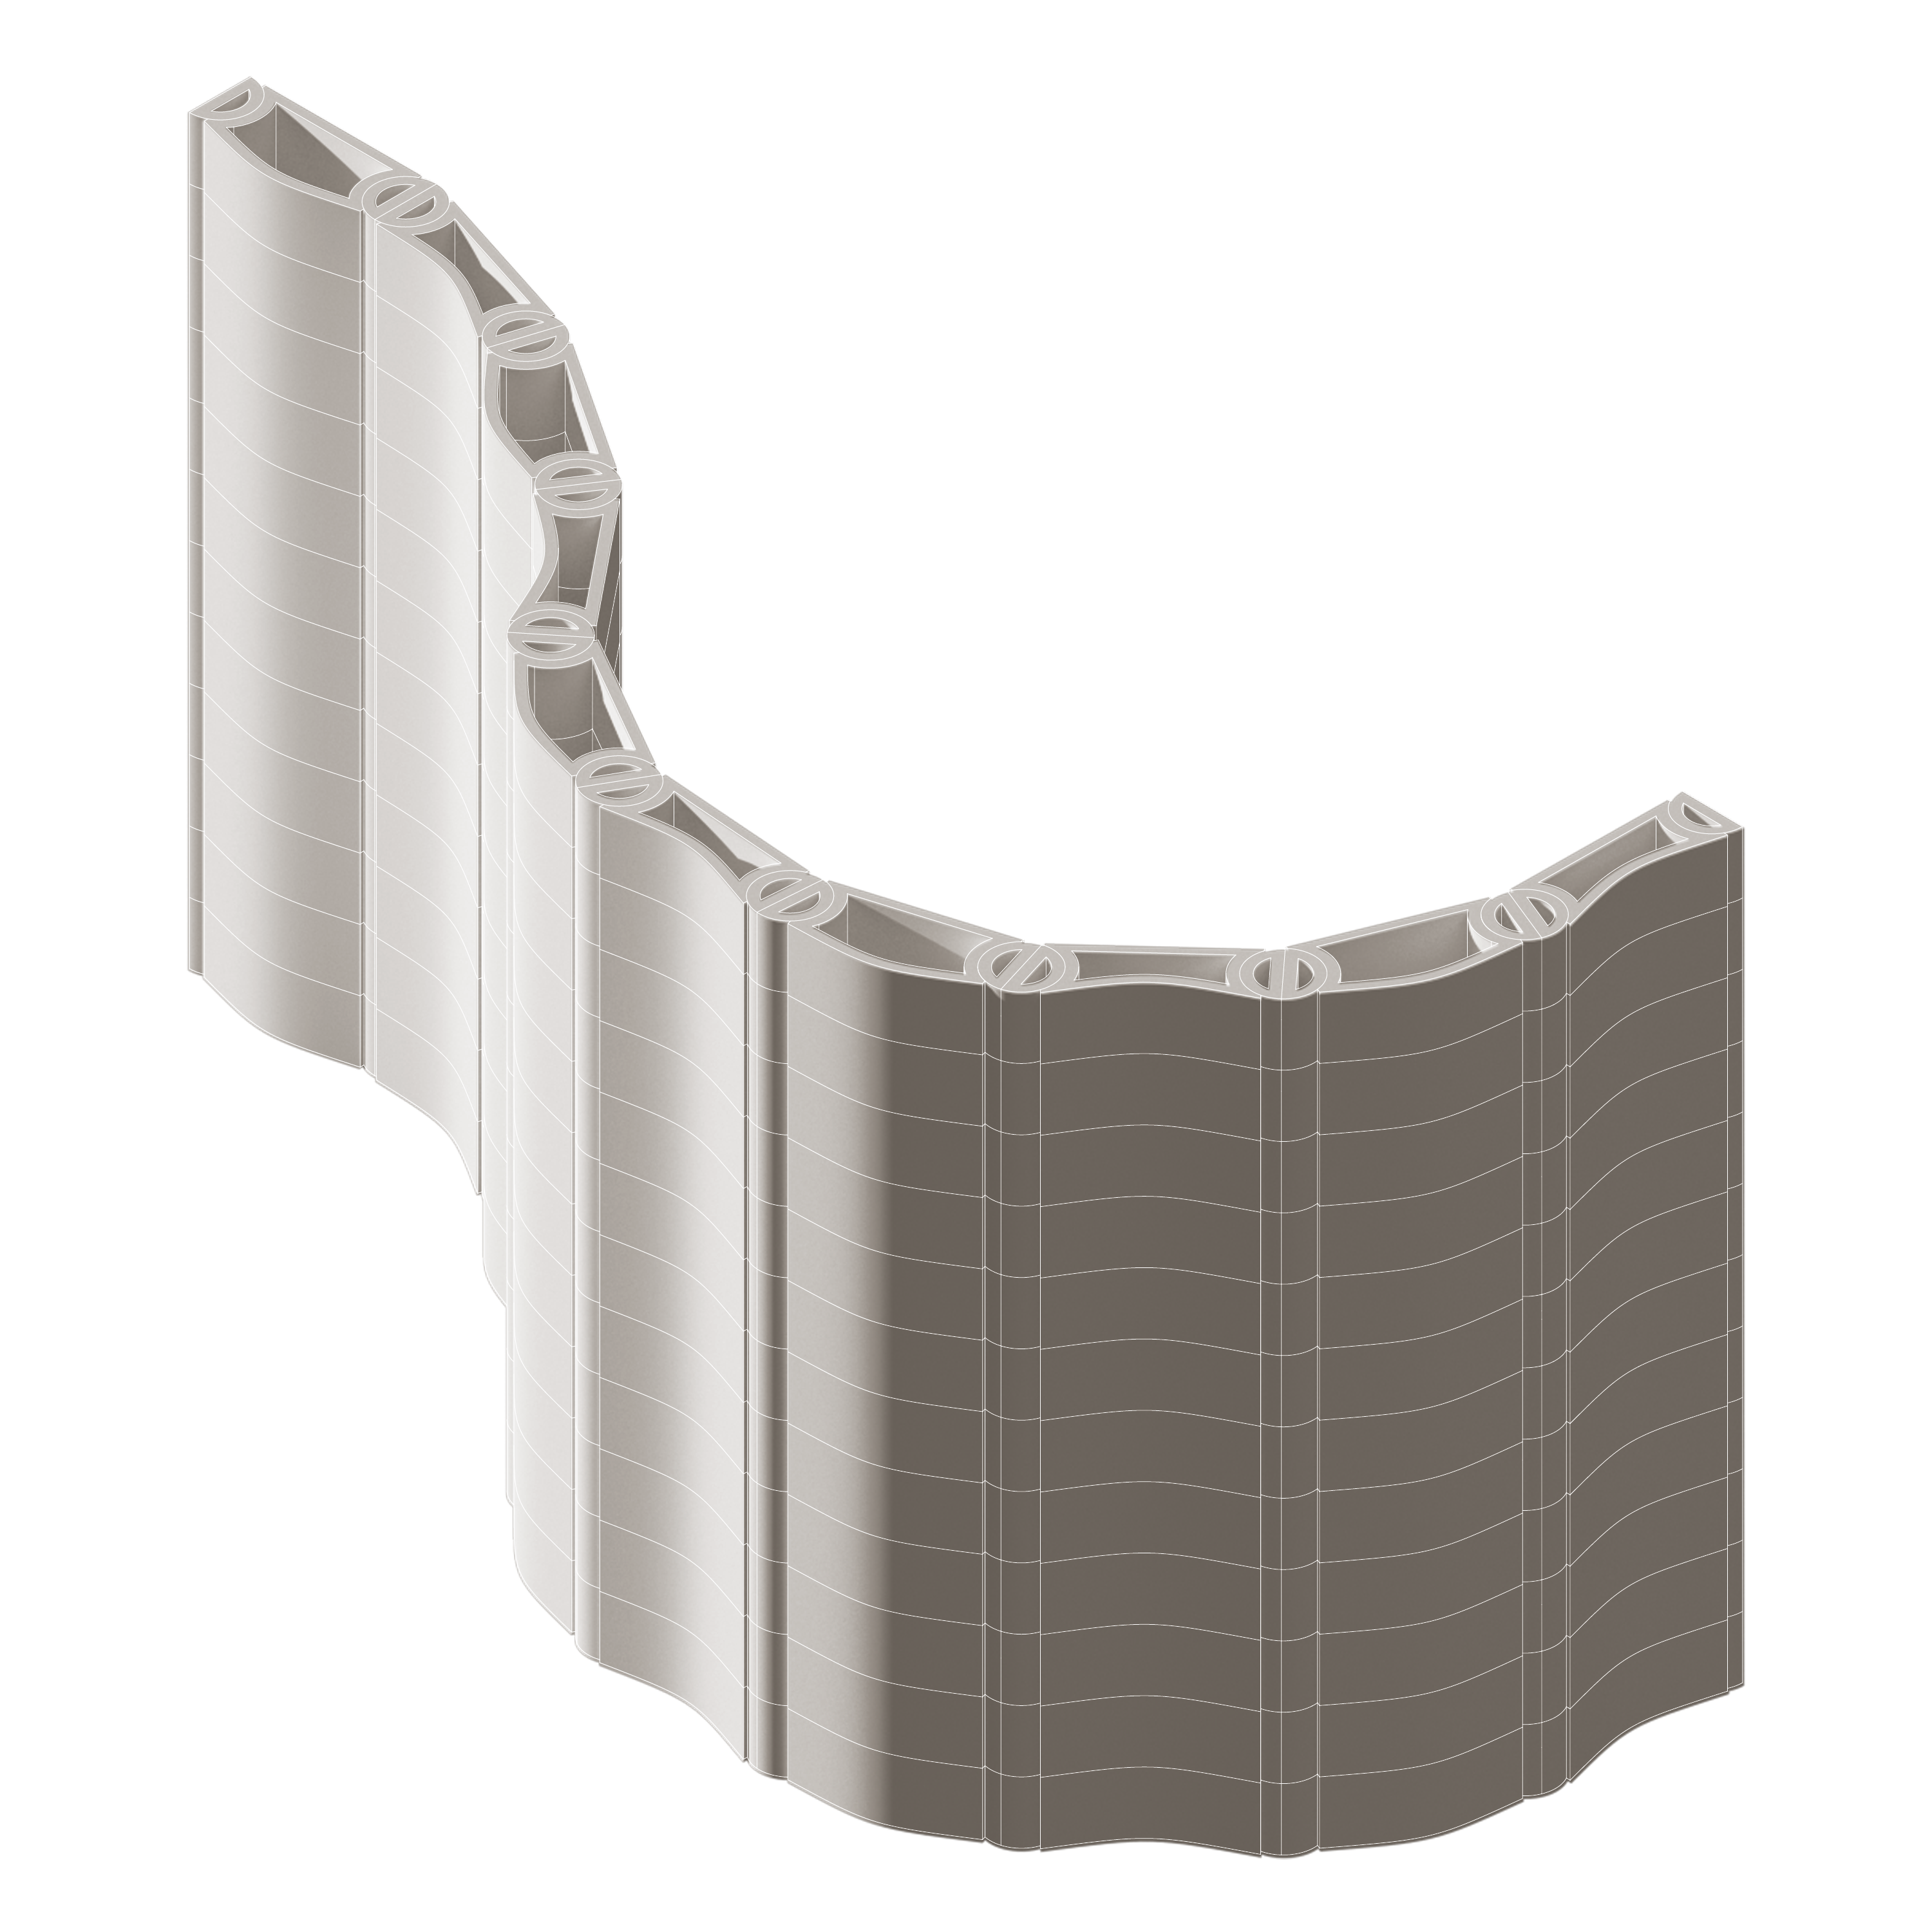 Curved Wall Configuration